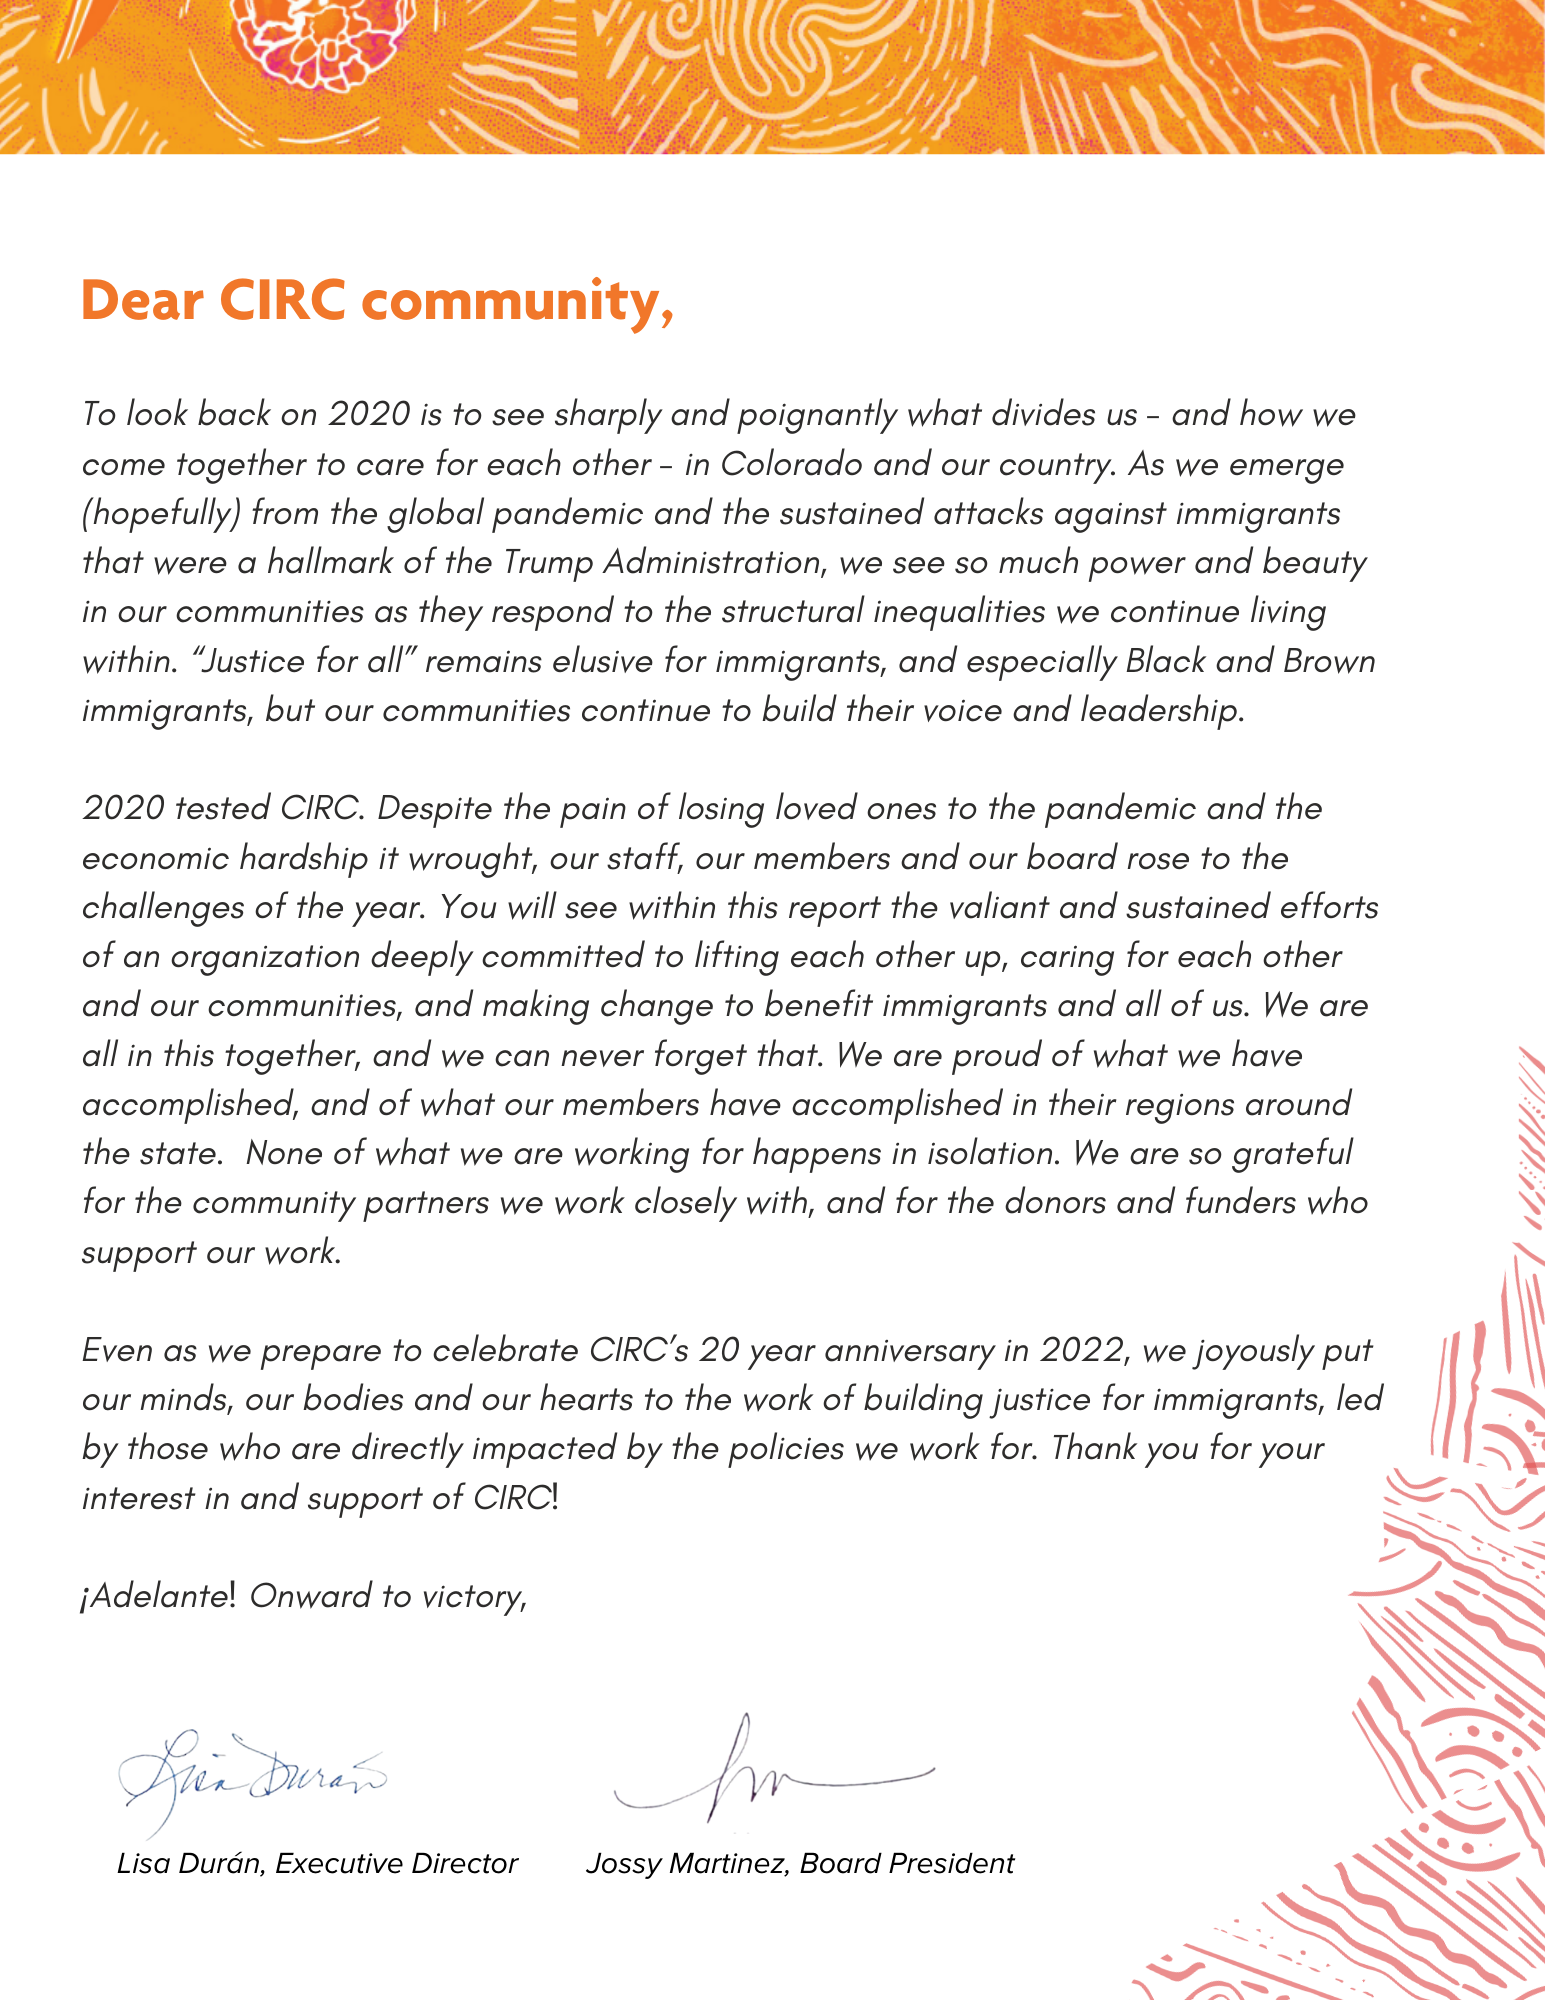 CIRC Annual Report in PNG form (choose above link to access report as PDF or plain text)